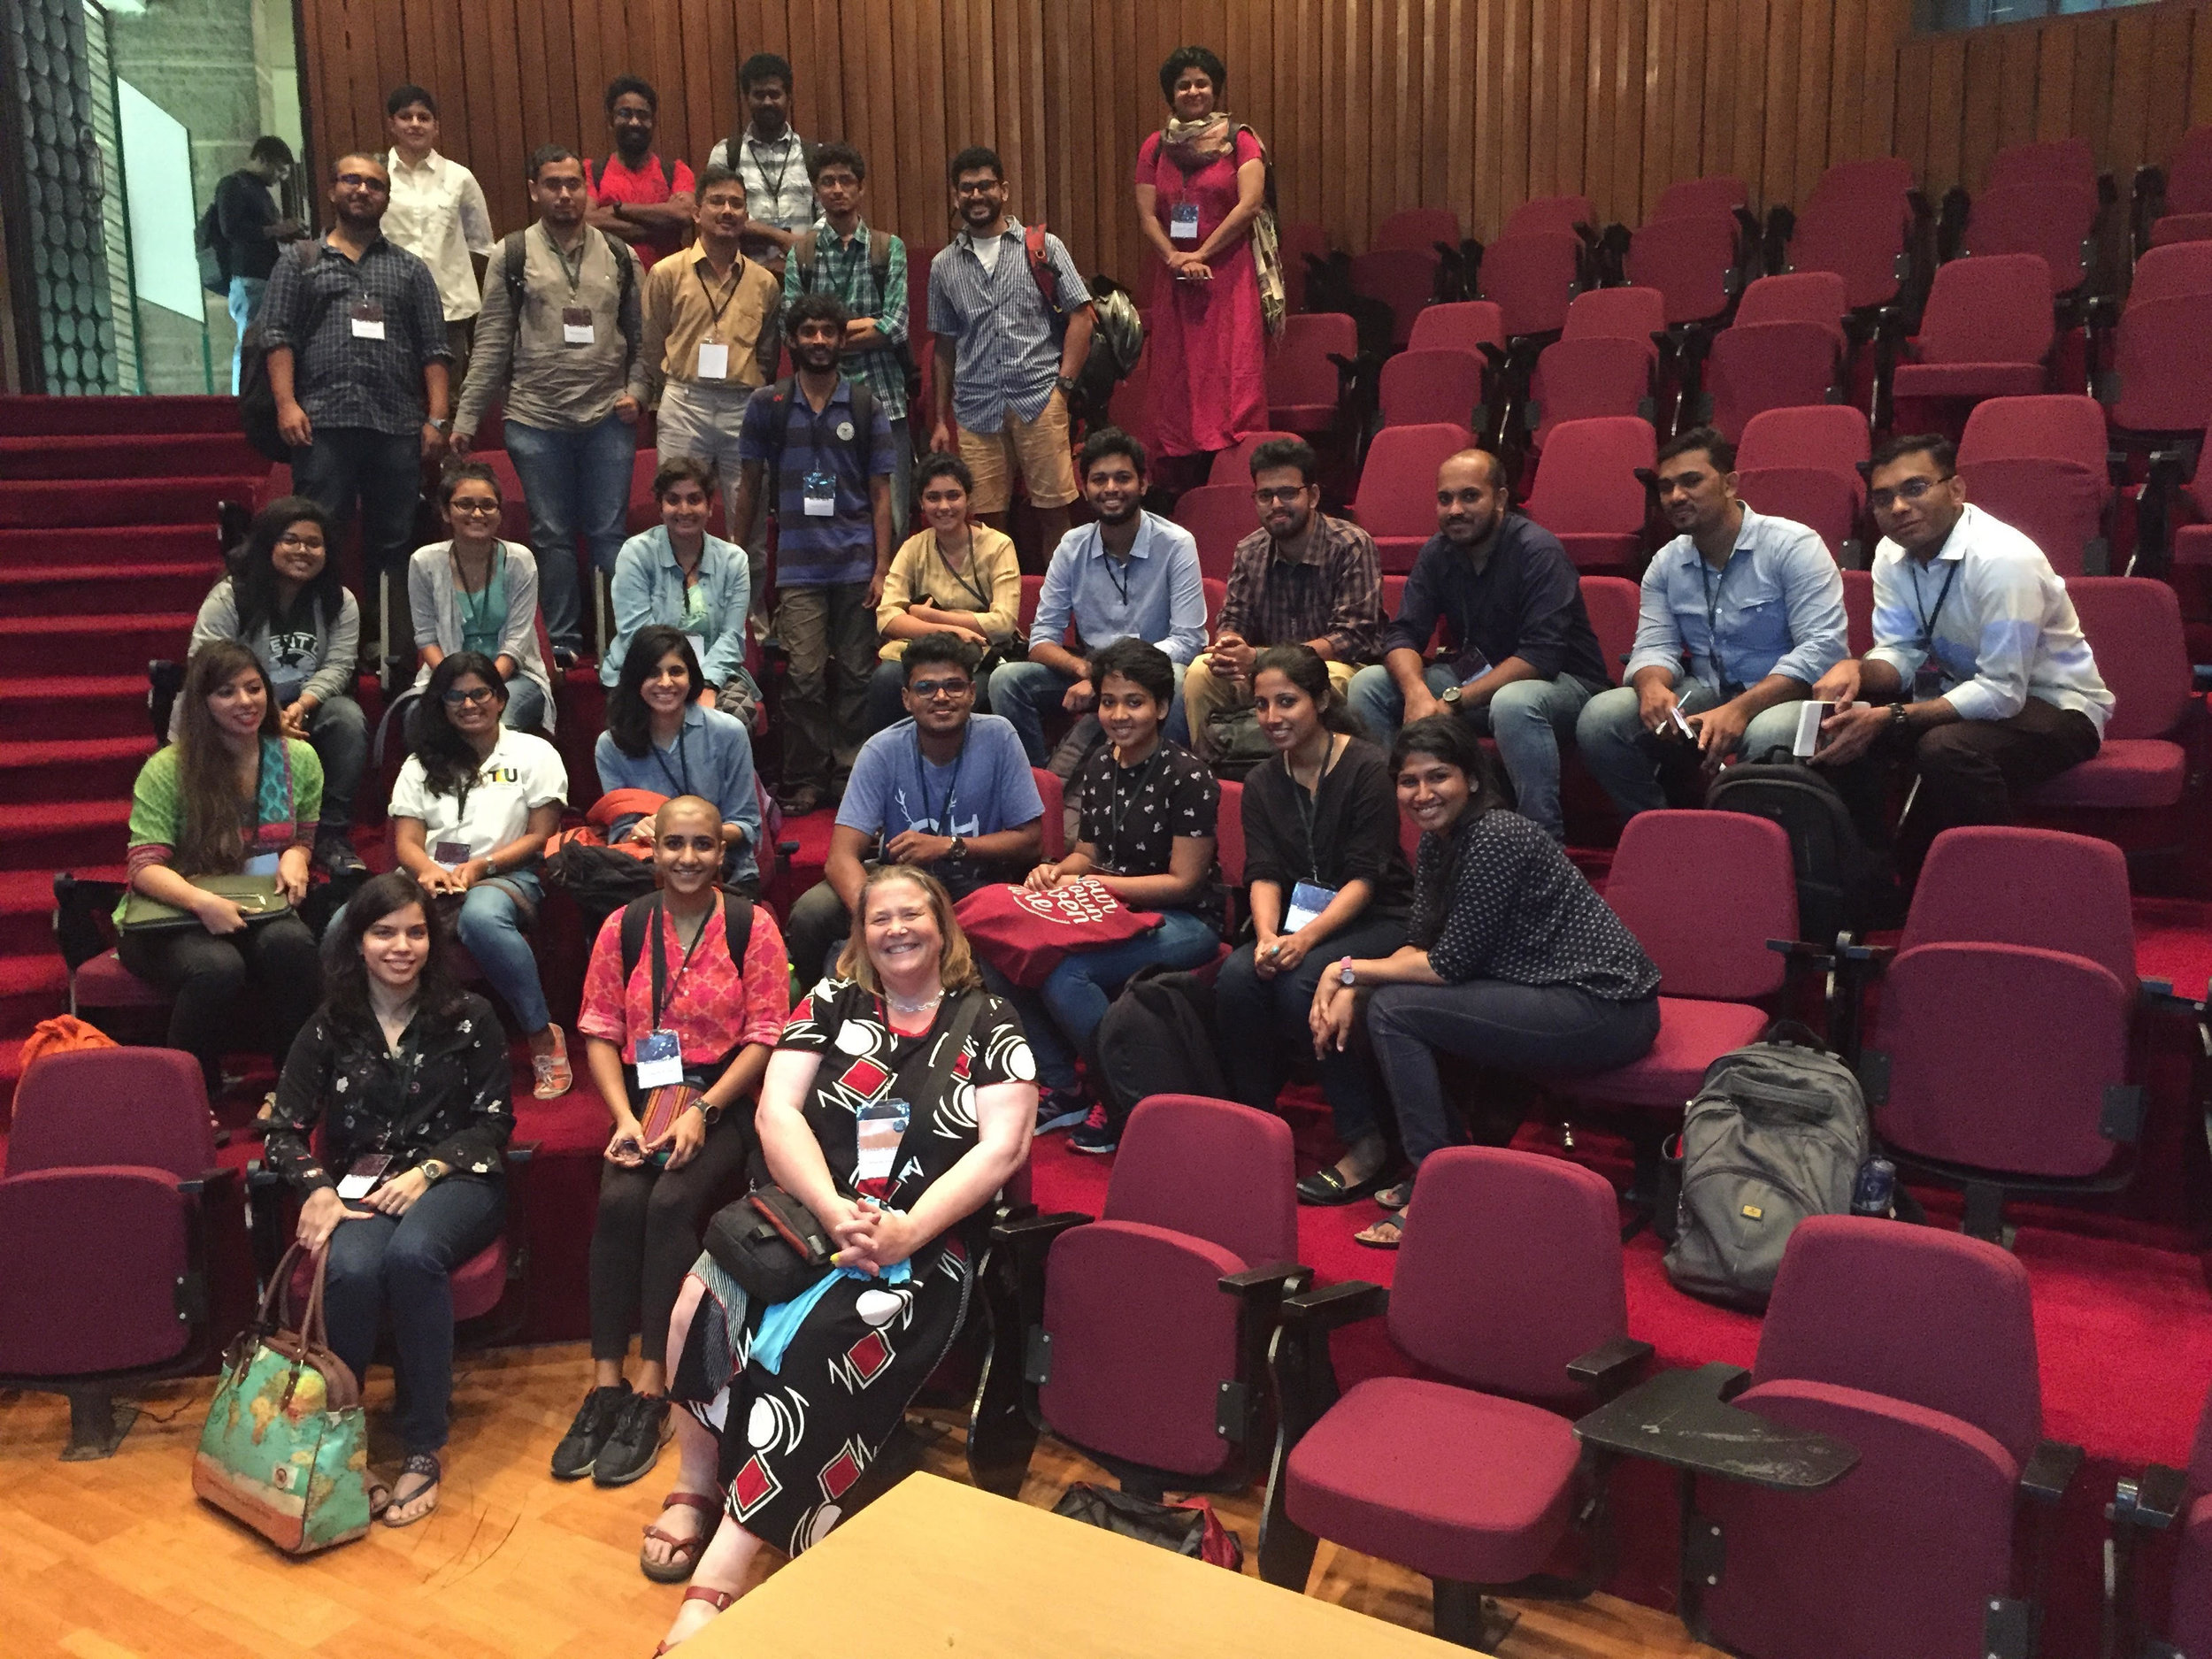 """Marine people gather during the """"Birds of a Feather"""" break out session at SCCS Bengaluru - a small portion of the whole [note TV in last row].jpg"""